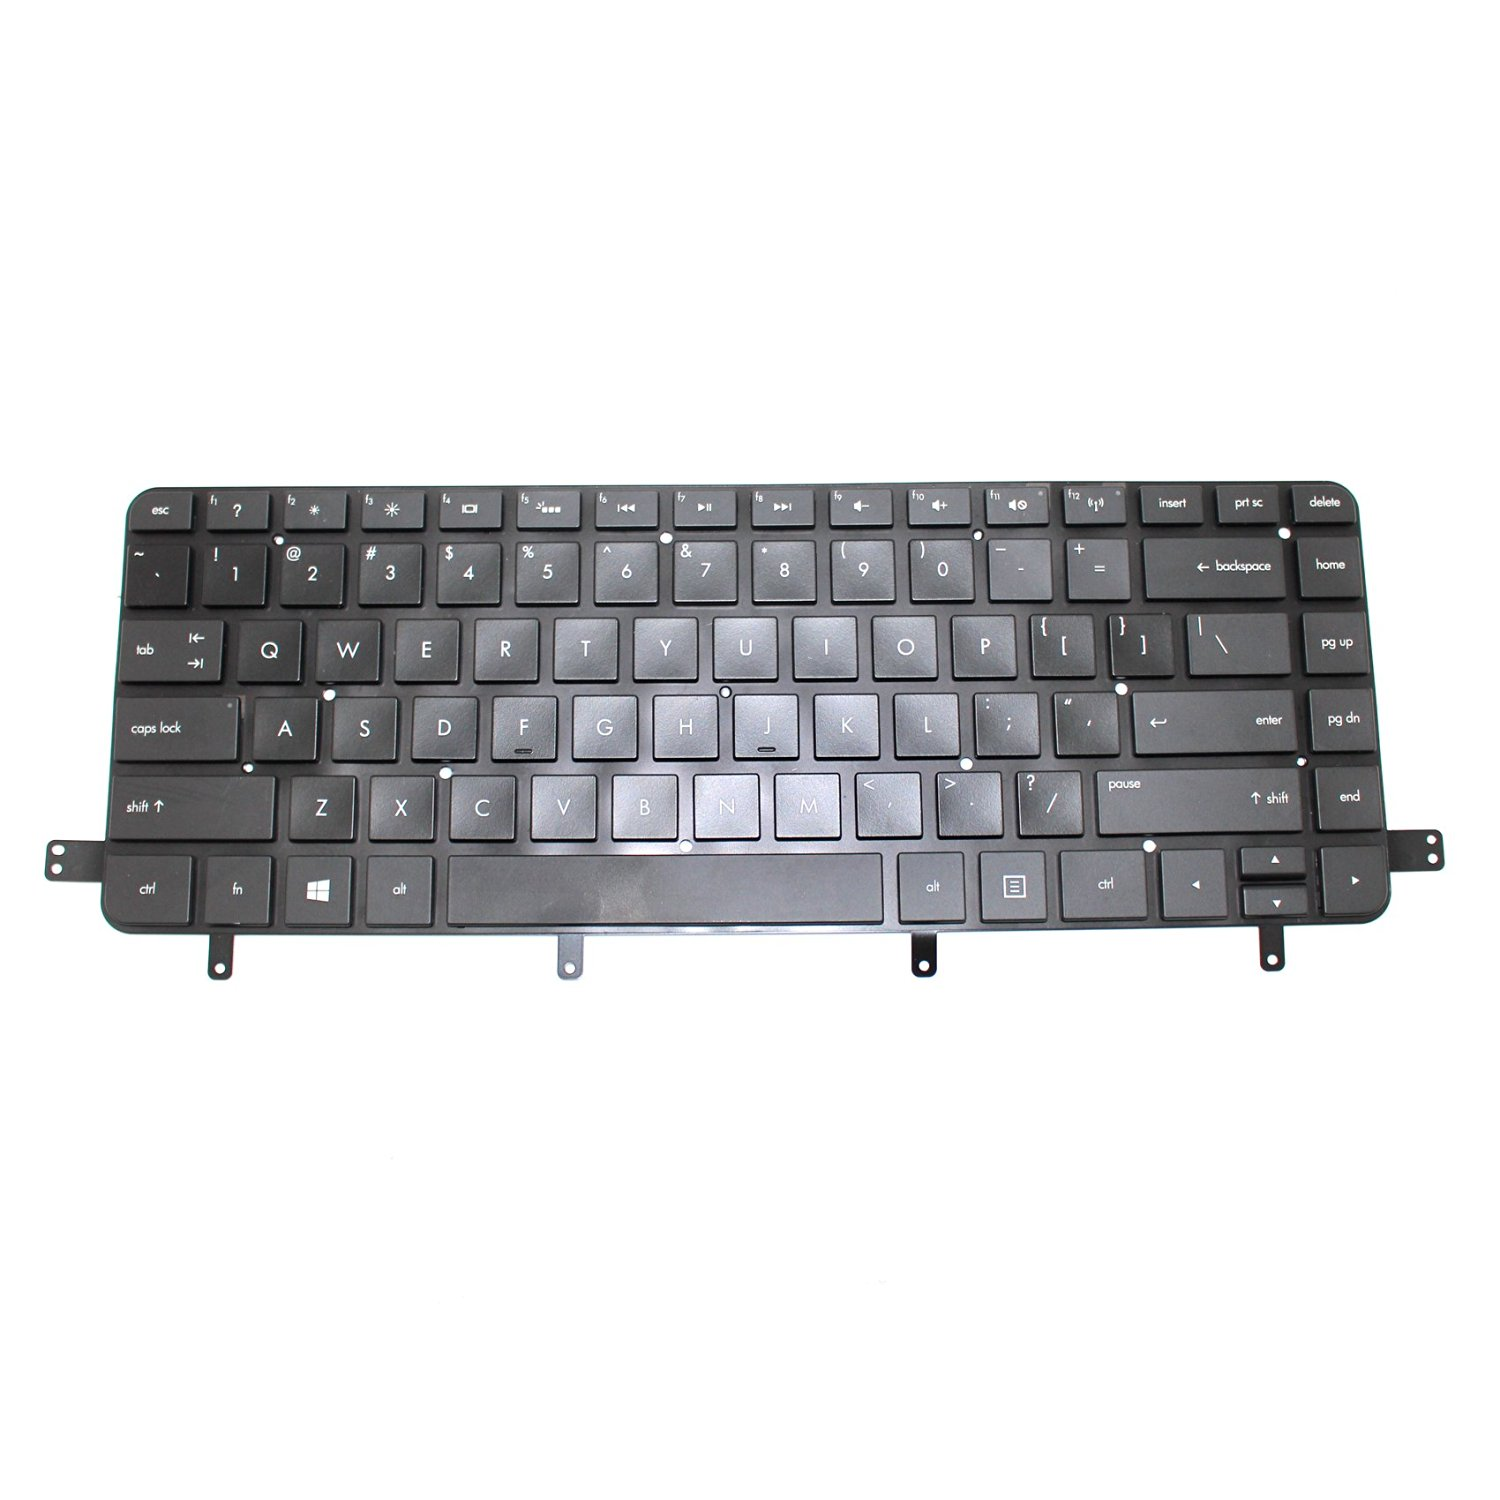 Generic New Black Laptop US Keyboard for HP Spectre XT TouchSmart Ultrabook 15t-4000 15-4000 15-4001xx 15-4010nr 15-4011nr 15-4013cl Series Replacement Part Number MP-11L23A0J698 PK130Q51A03